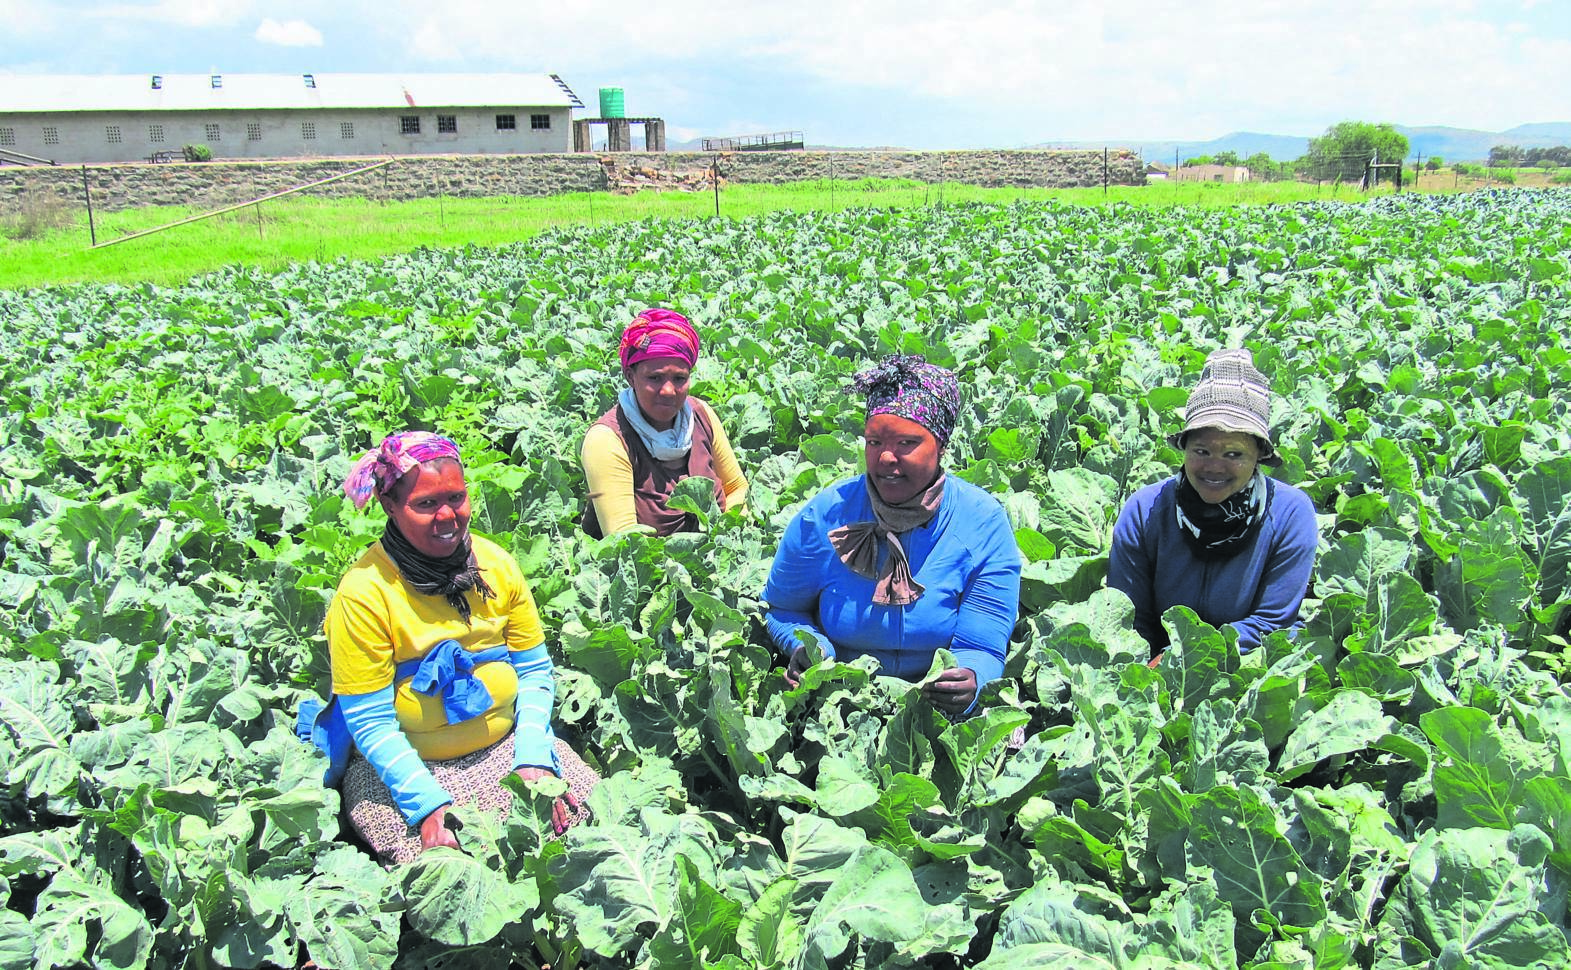 Beneficiaries: from left, Nomusa Dlamini, Nompendulo Dlamini, Thandeka Nene and Nosipho Dladla, harvest broccoli at the Gugulethu Farm in Mooi River,